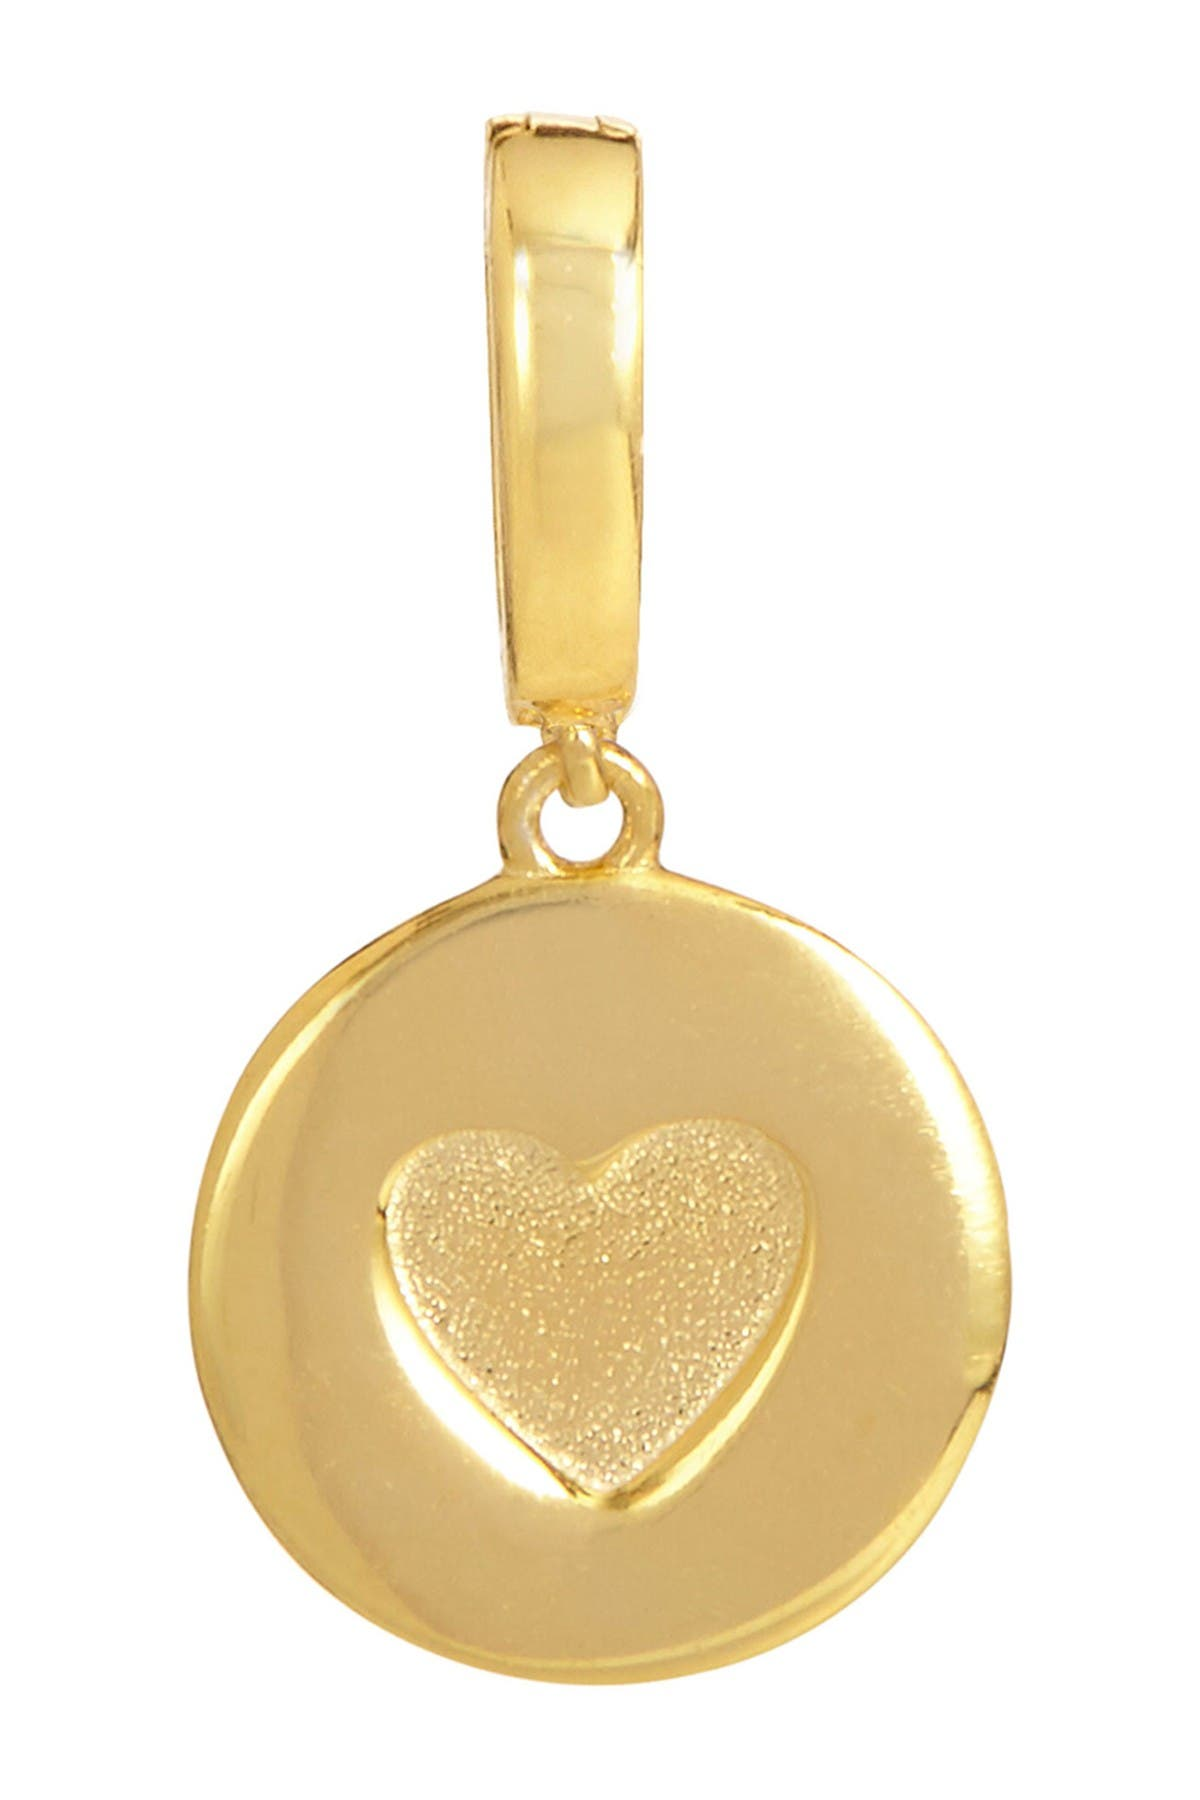 Savvy Cie 18K Yellow Gold Vermeil Heart Charm at Nordstrom Rack